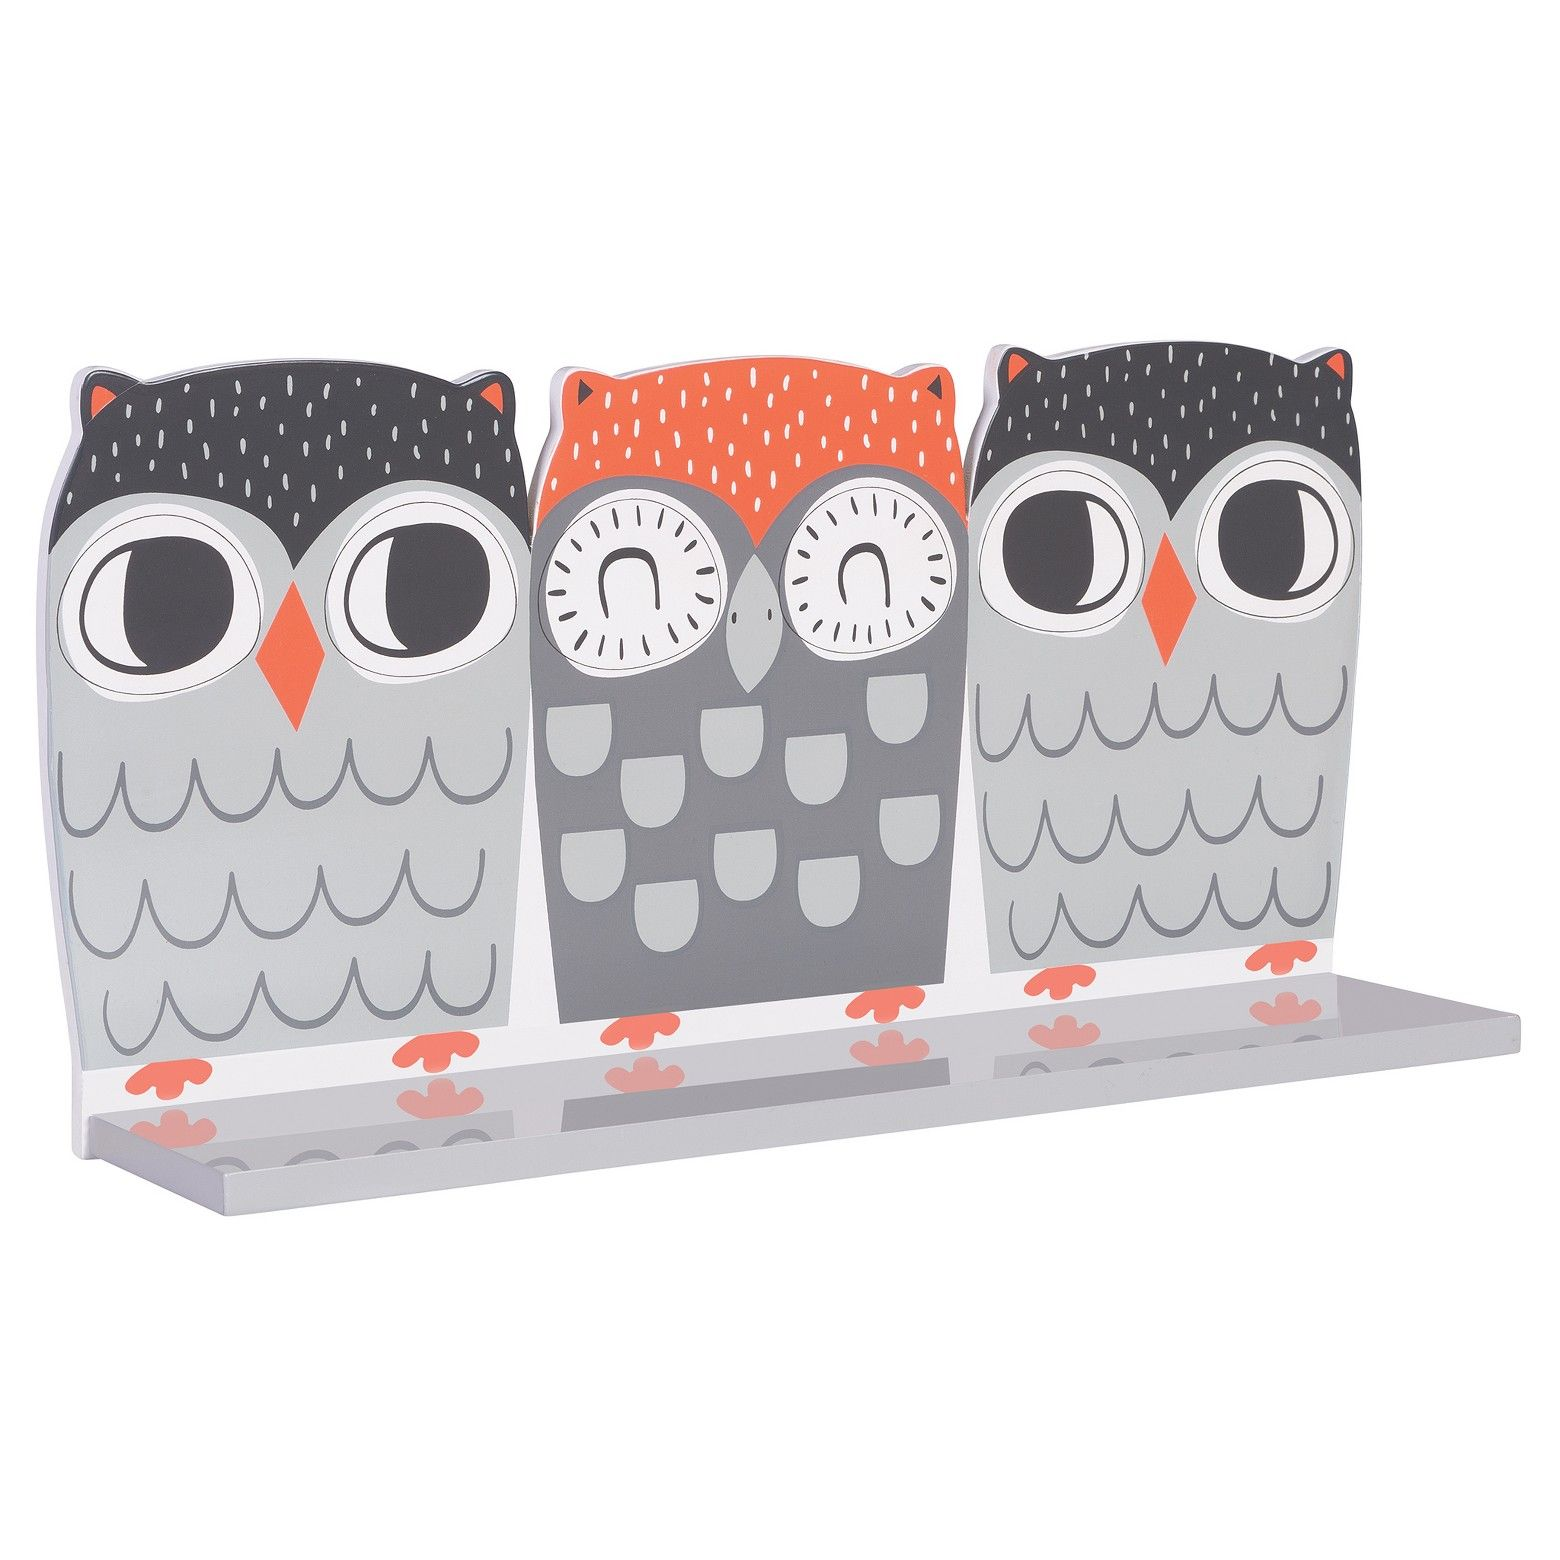 Trend Lab S Owl Shelf Wall Shelf Decor Wall Shelves